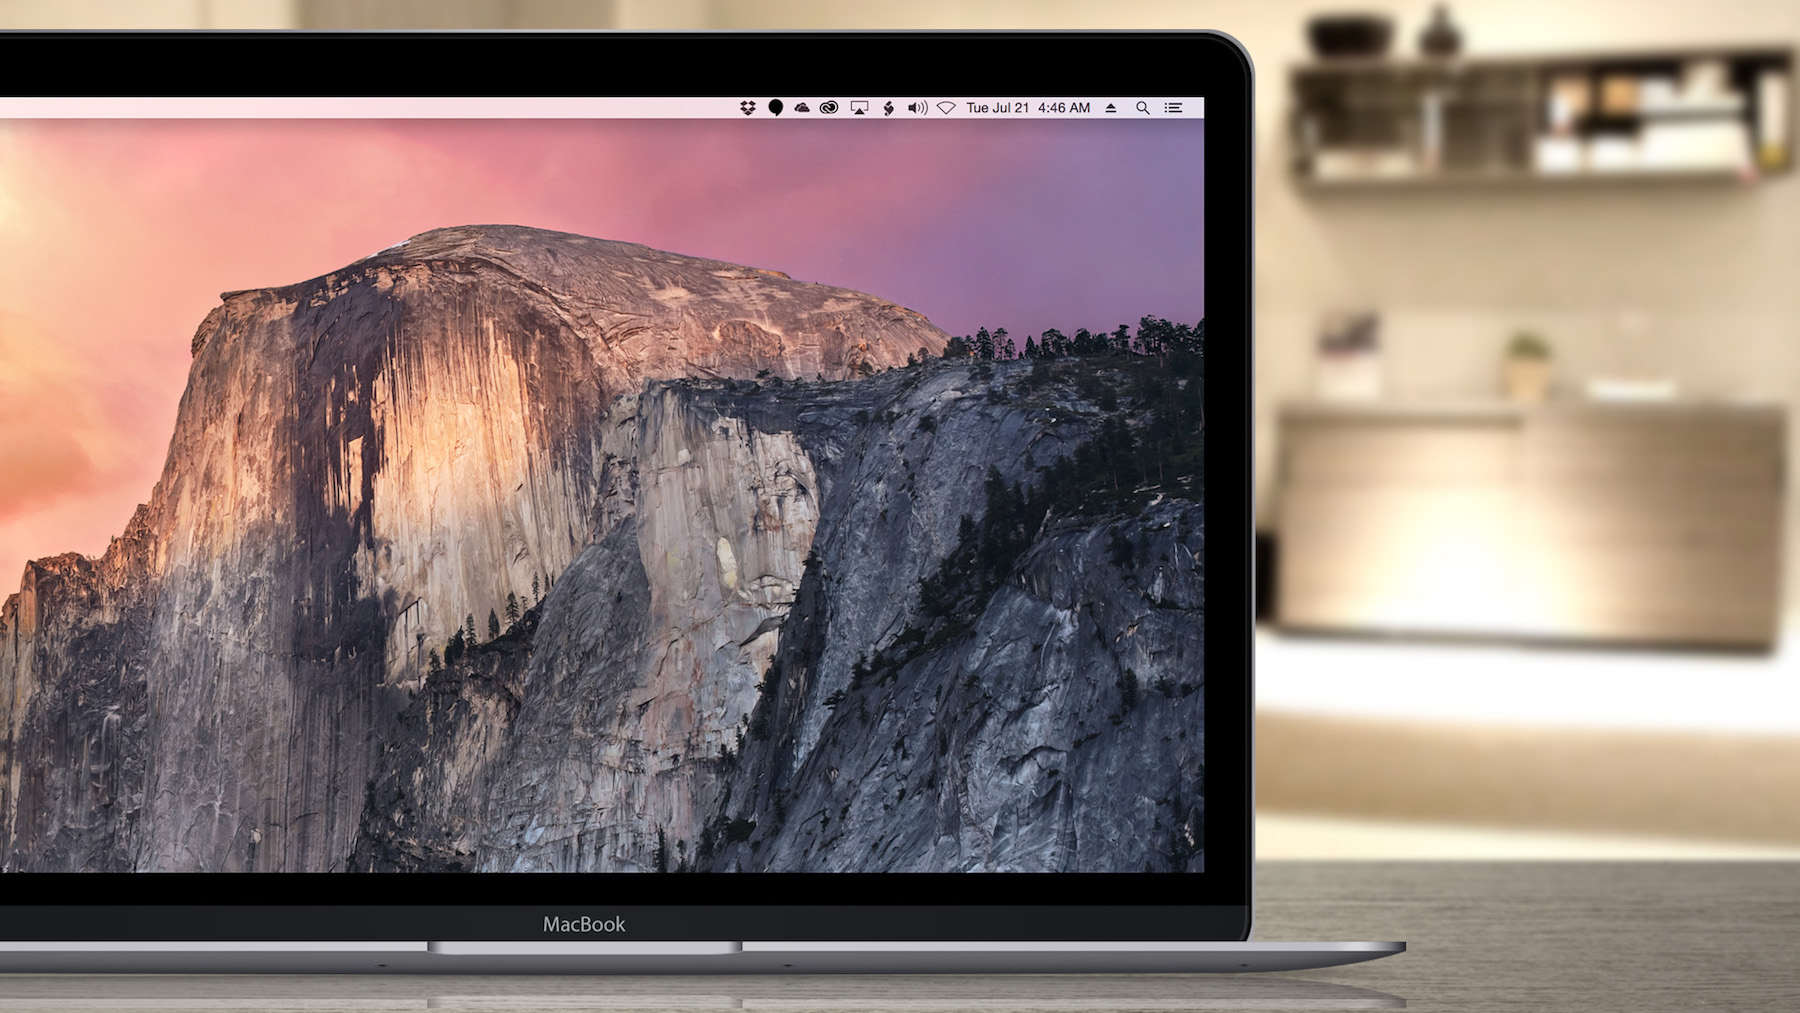 How conveniently control sound on Mac